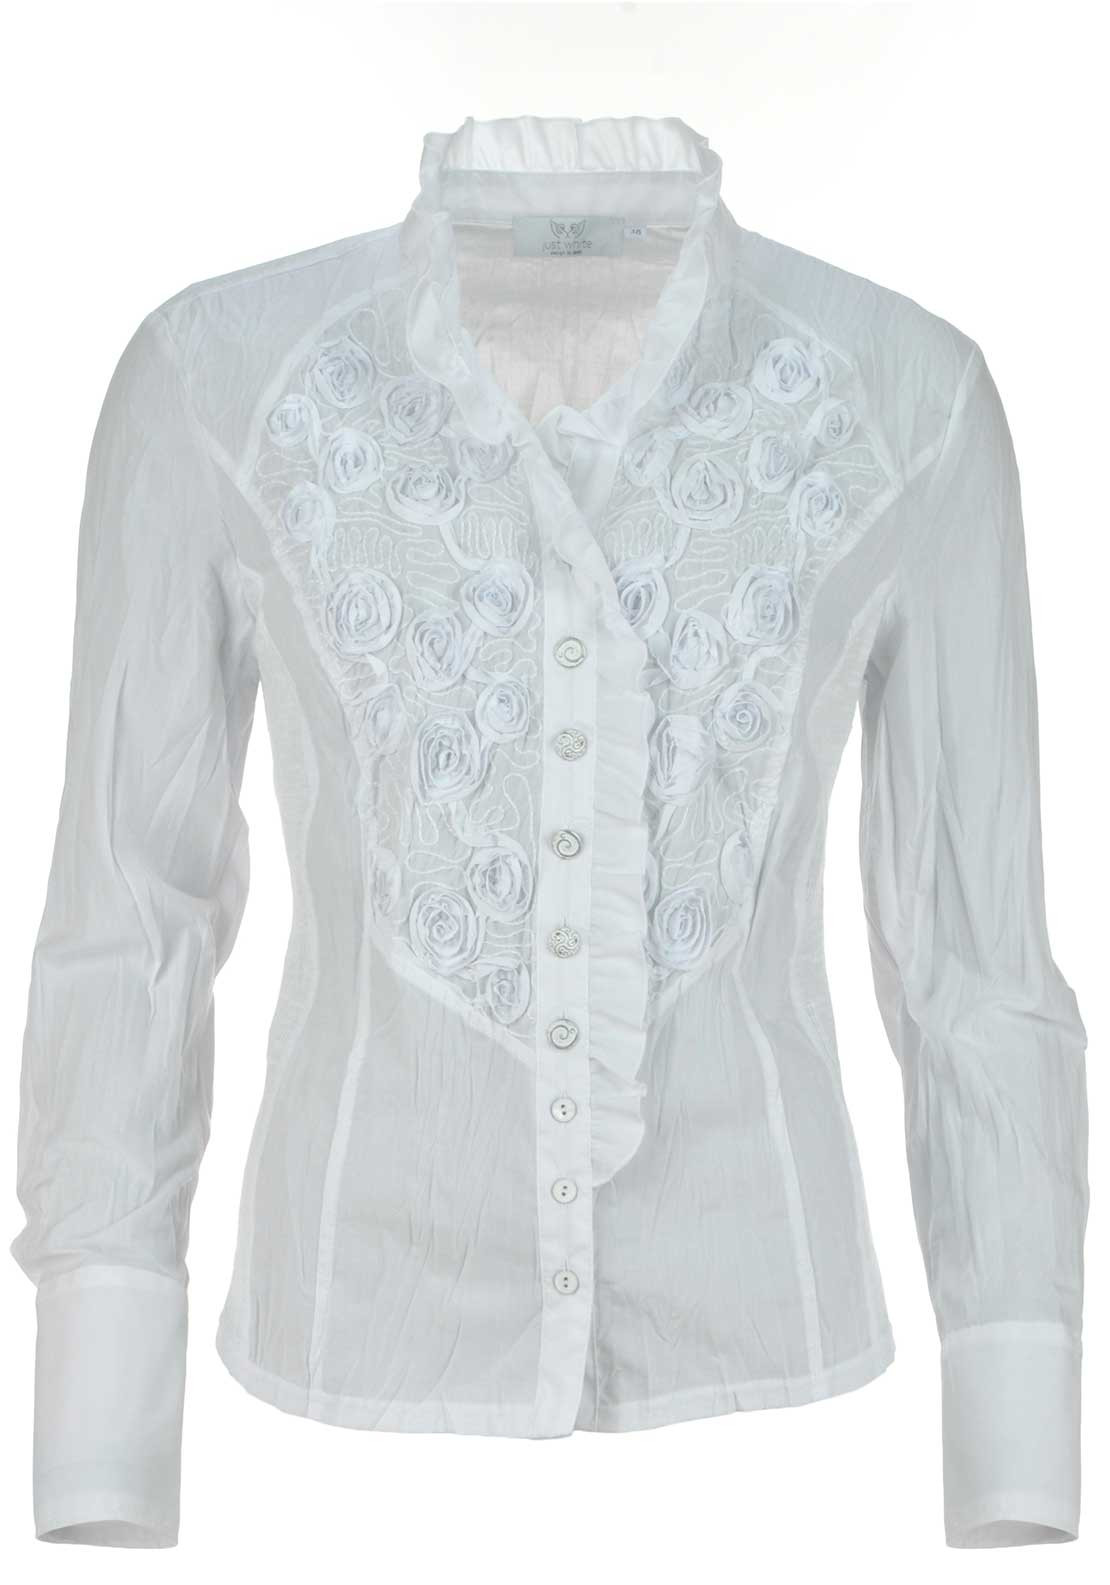 Just White Embroidered Floral Print Crushed Long Sleeve Blouse, White